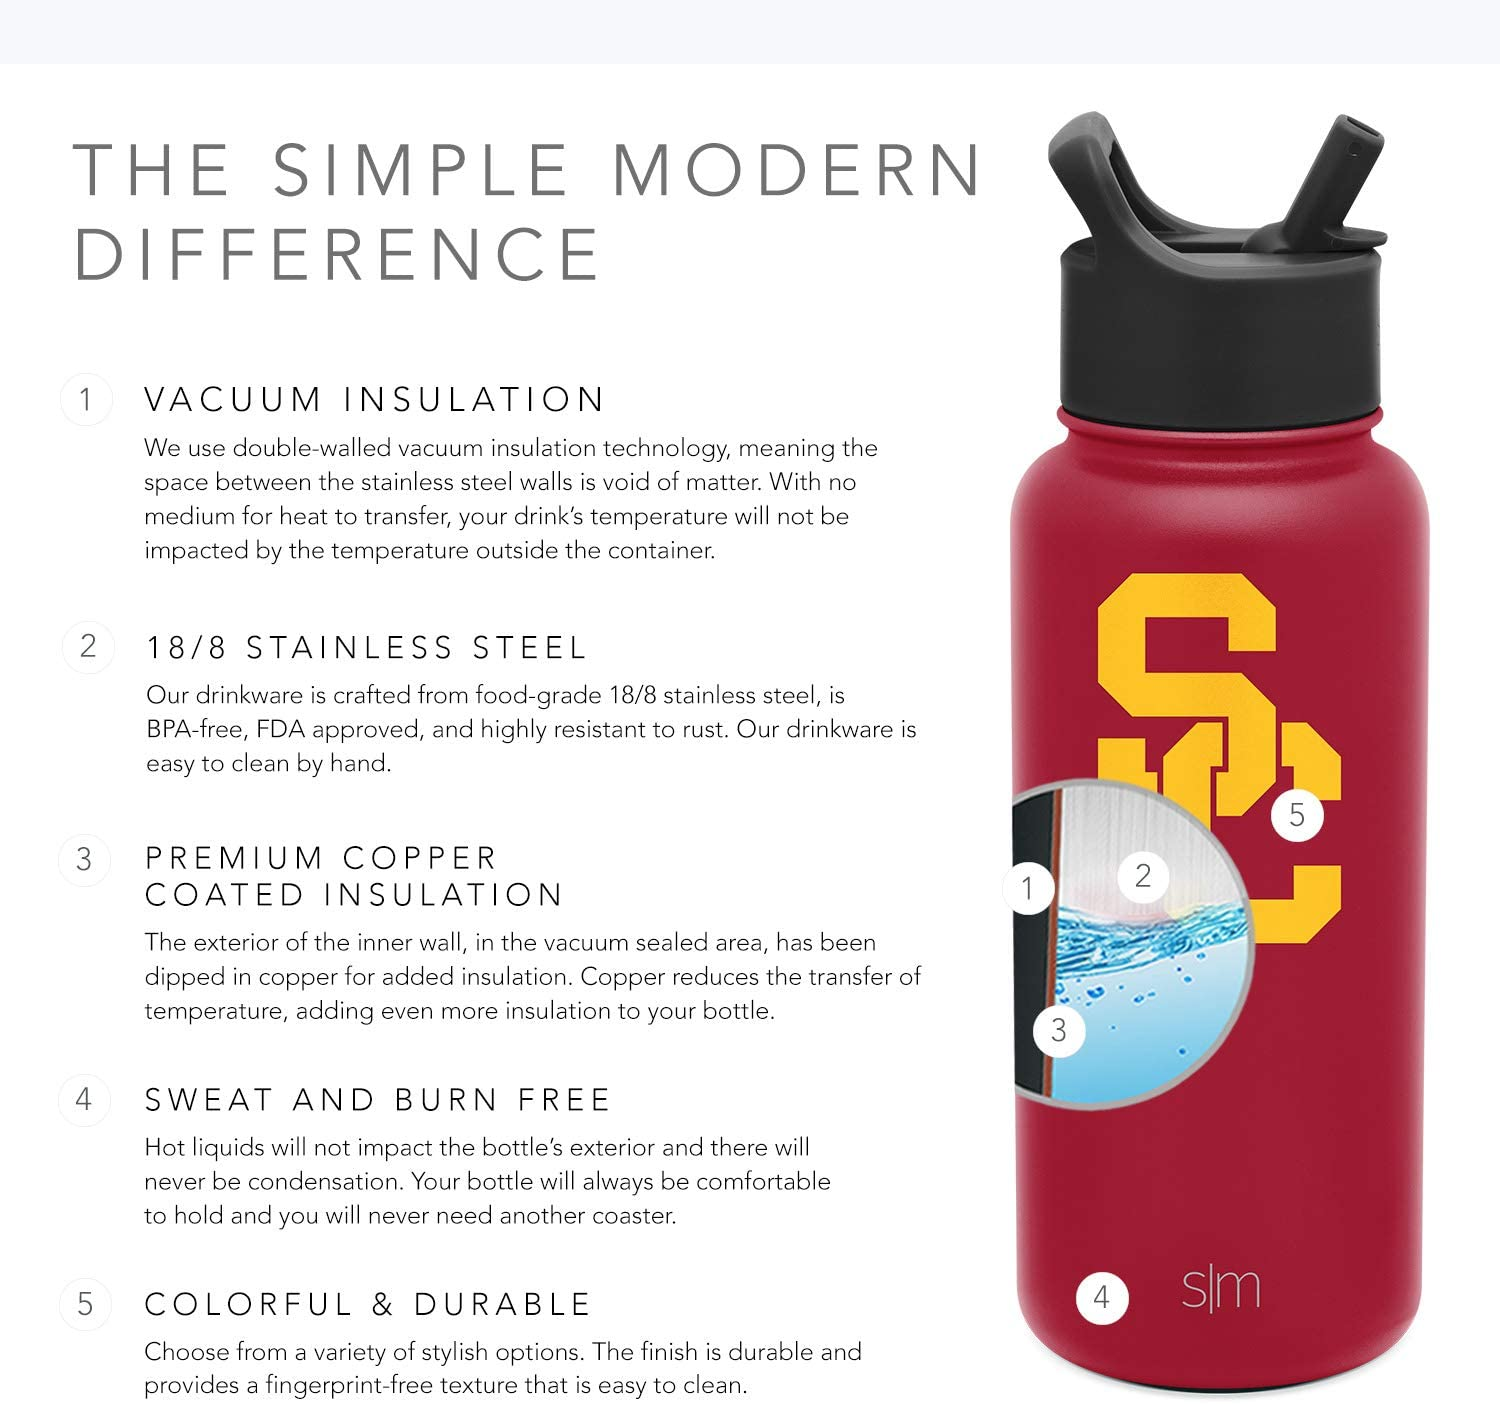 Auburn Tigers Gifts for Men Women Dads Leakproof Travel Tumbler Stainless Steel Simple Modern 32oz Summit Water Bottle with Straw Lid